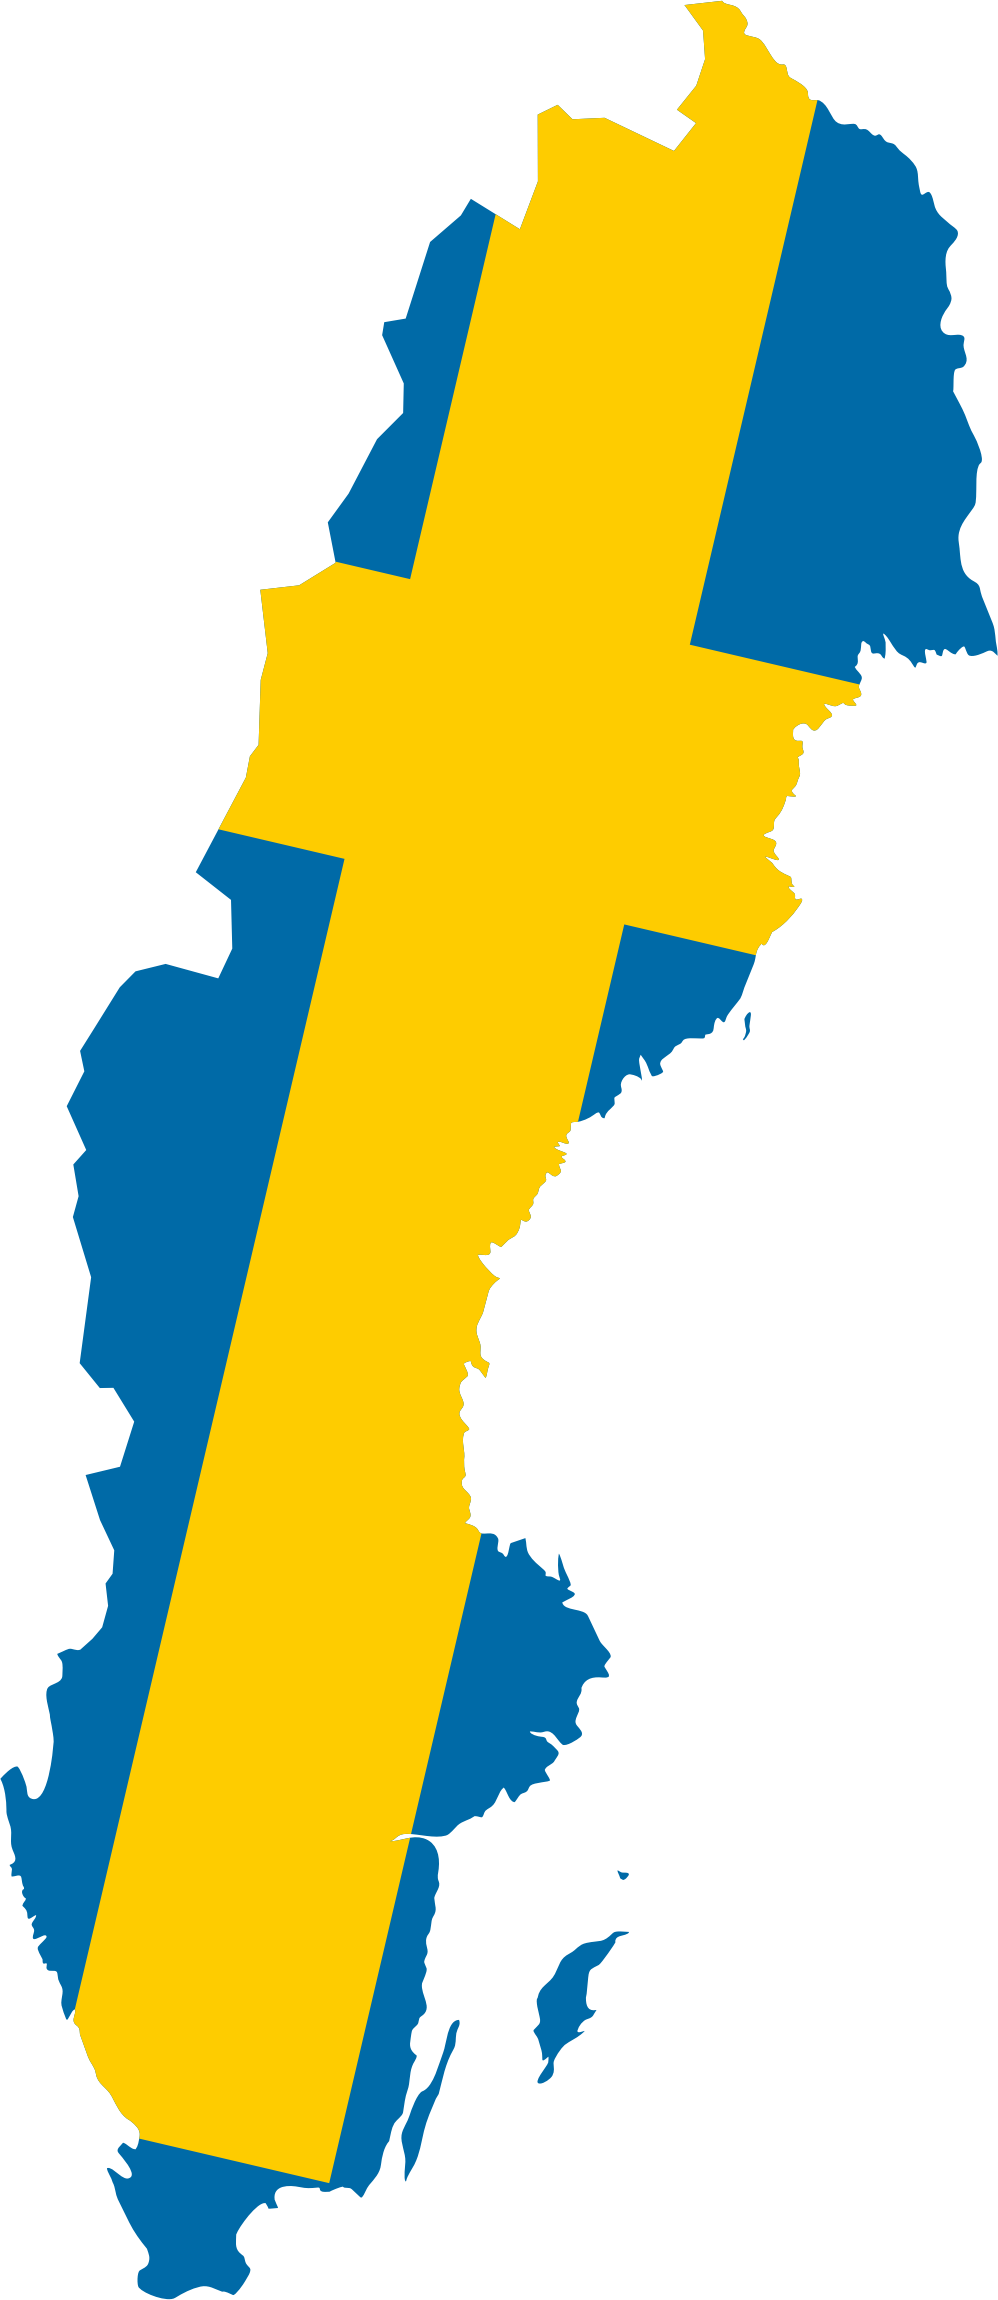 Sweden Map Flag by GDJ